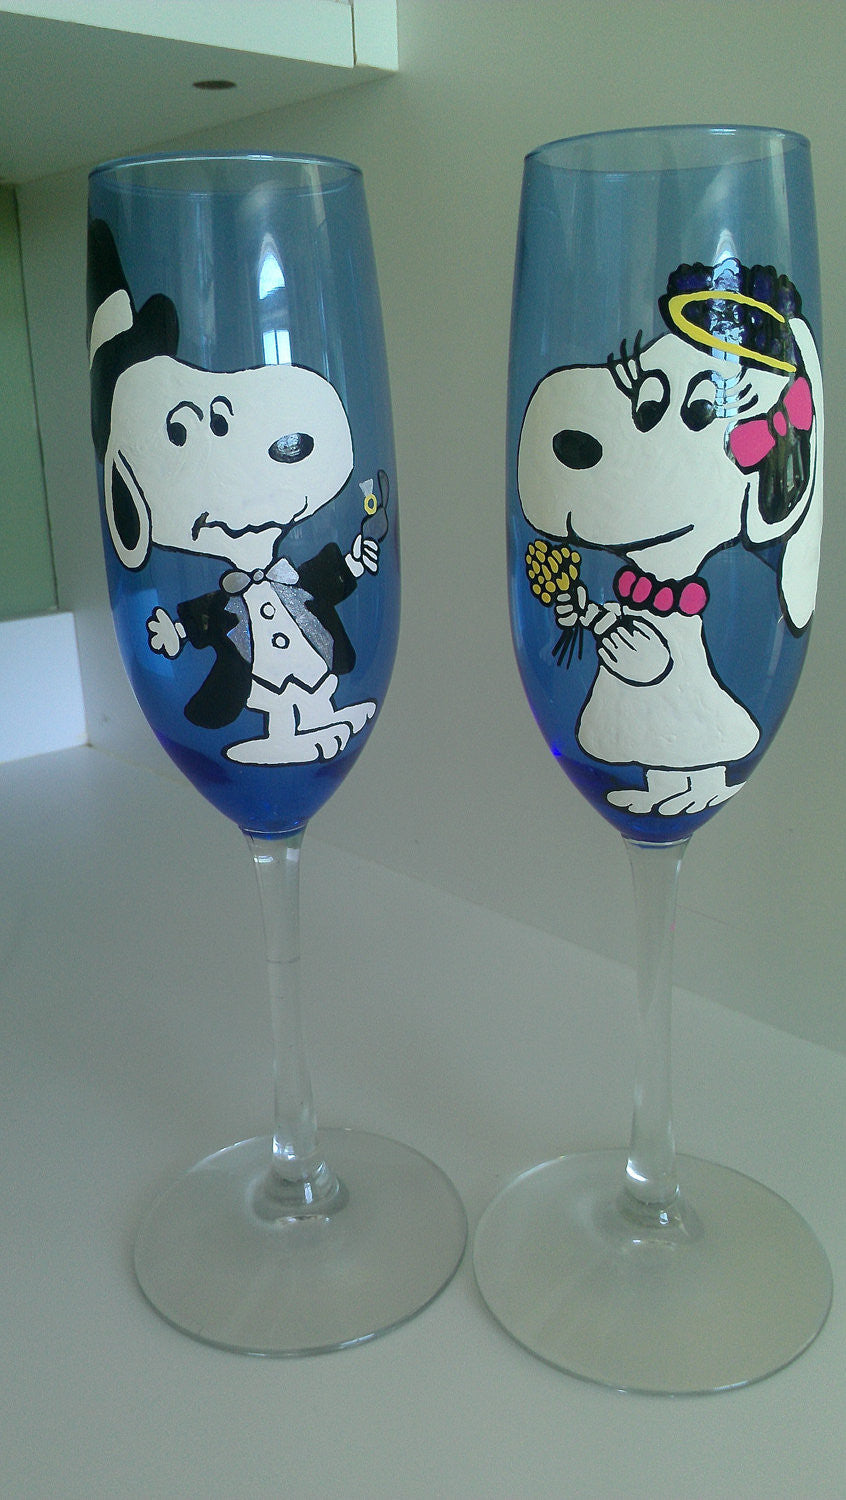 custom set of 2 peanuts gang custom snoopy bride groom wedding toasting glasses charlie brown Schroeder lucy woodstock hand painted wine